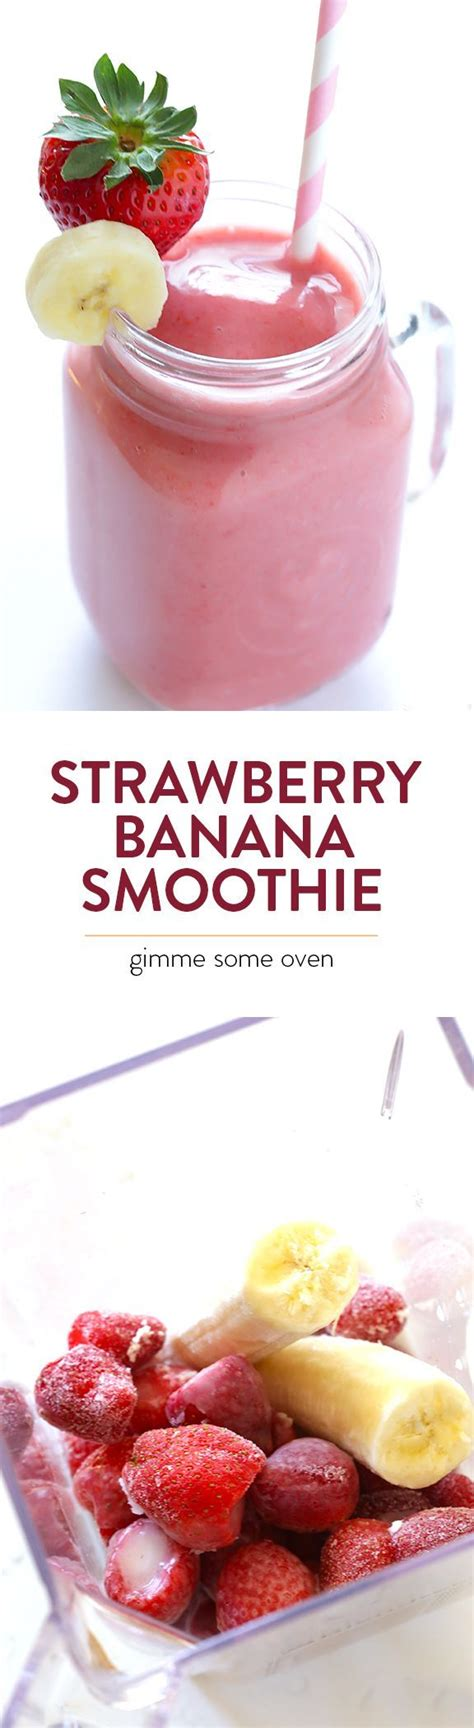 Strawberry Banana Smoothie Recipe Detox by Strawberry Banana Smoothie Recipe Strawberry Banana